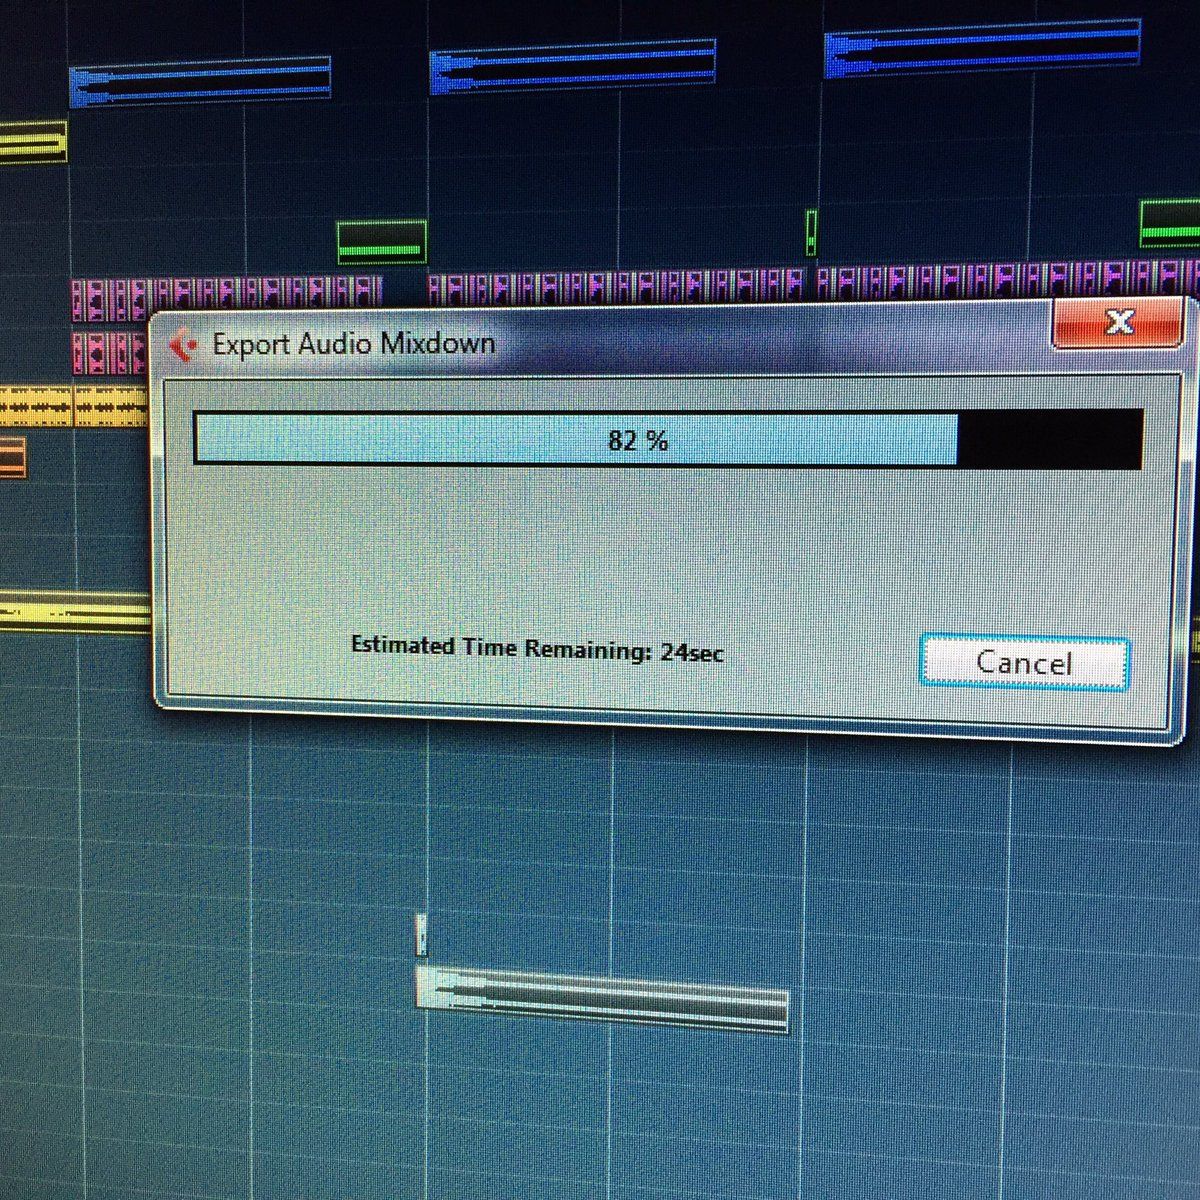 New track done!! Now waiting for the vocals...#IAMTrance #Trancefamily https://t.co/l5MCVVwPiT